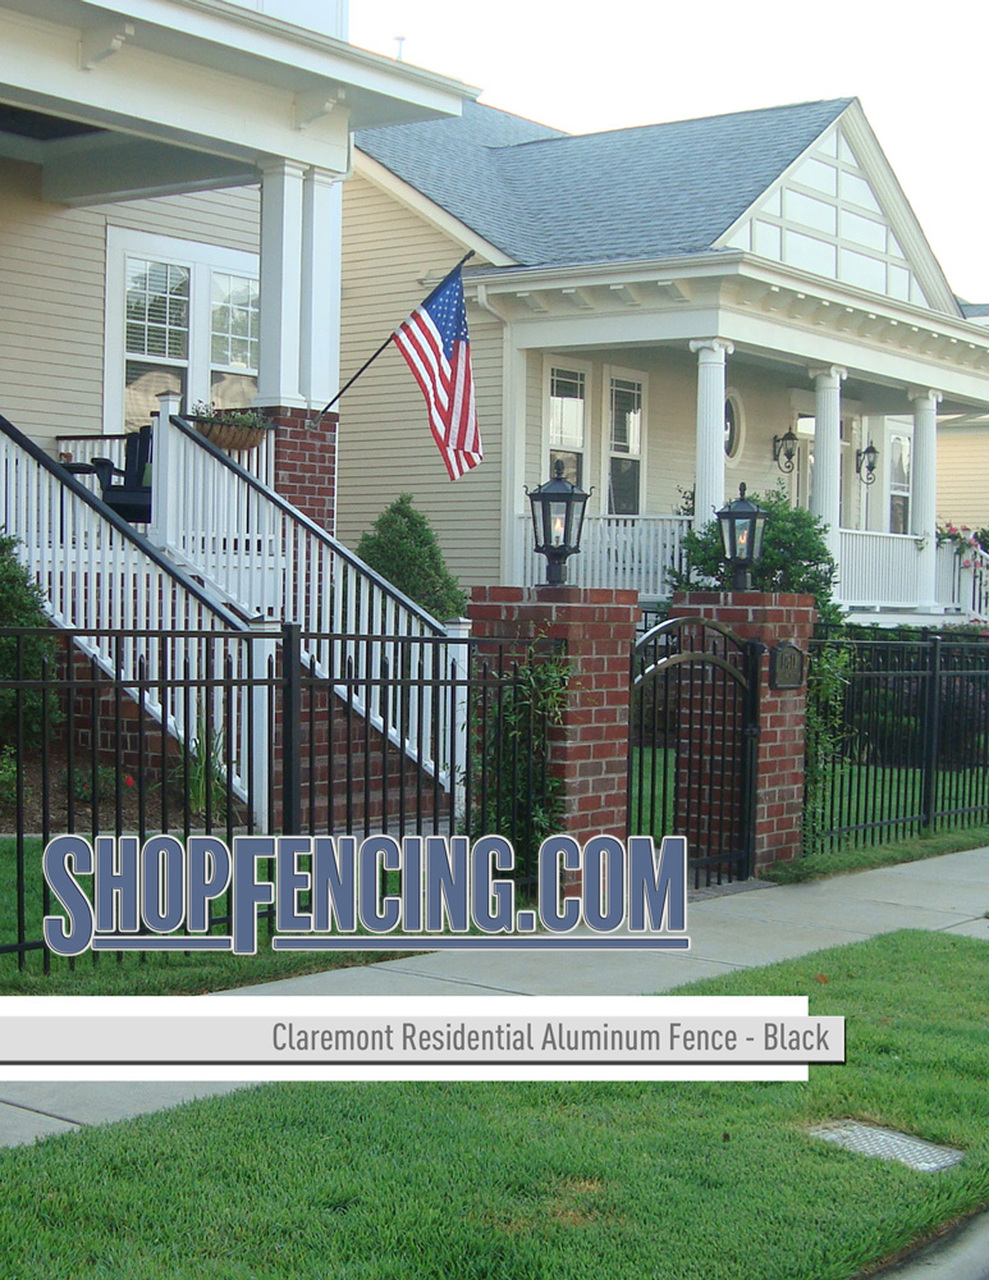 Black Residential Claremont Aluminum Fencing From ShopFencing.com